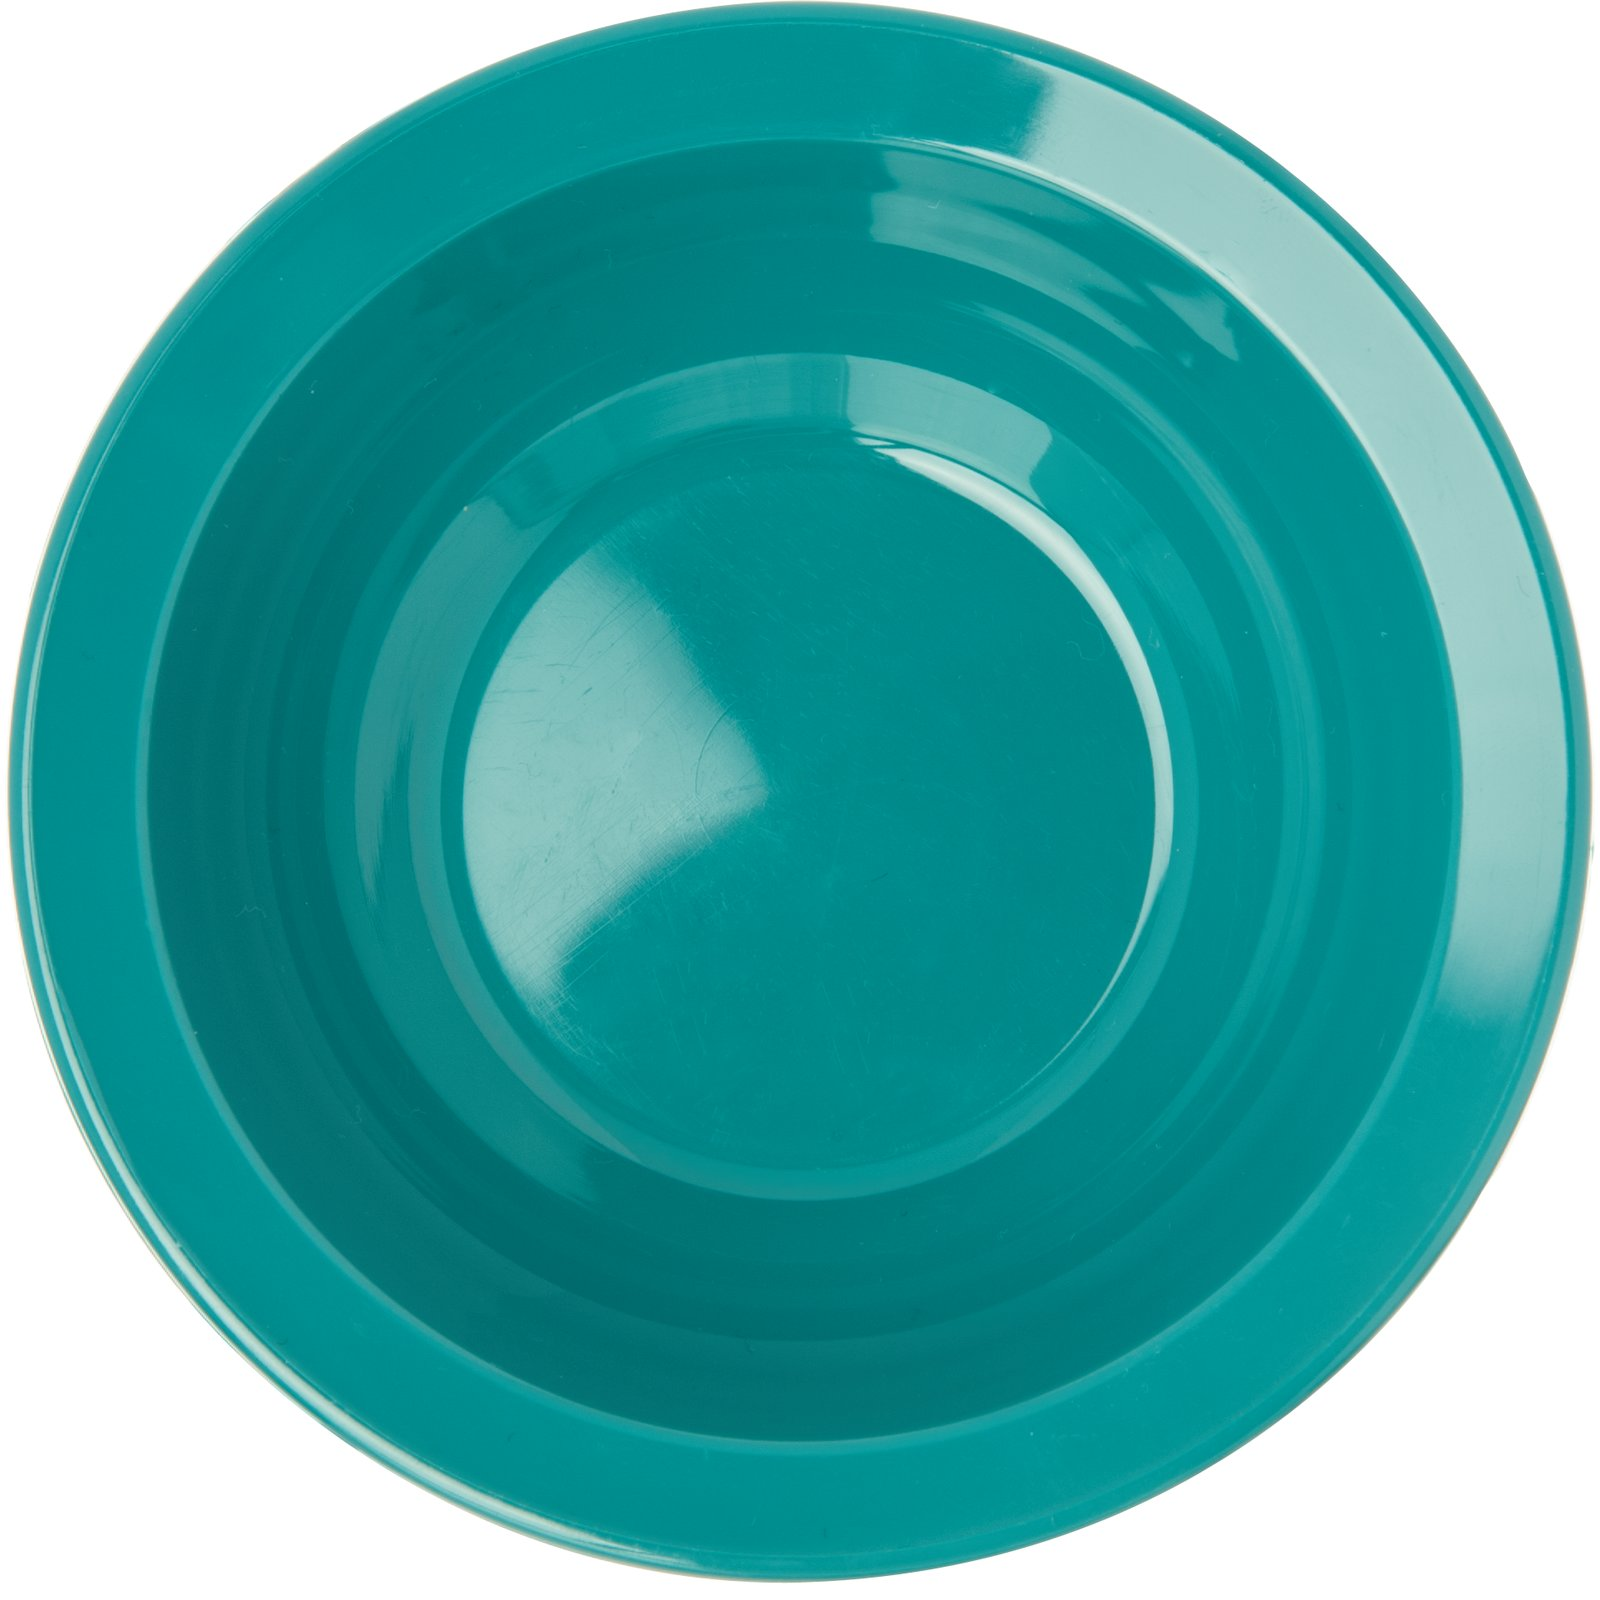 ... PCD30515 - Polycarbonate Rimmed Fruit Bowl 5 oz - Teal  sc 1 st  Carlisle FoodService Products & PCD30515 - Polycarbonate Rimmed Fruit Bowl 5 oz - Teal | Carlisle ...